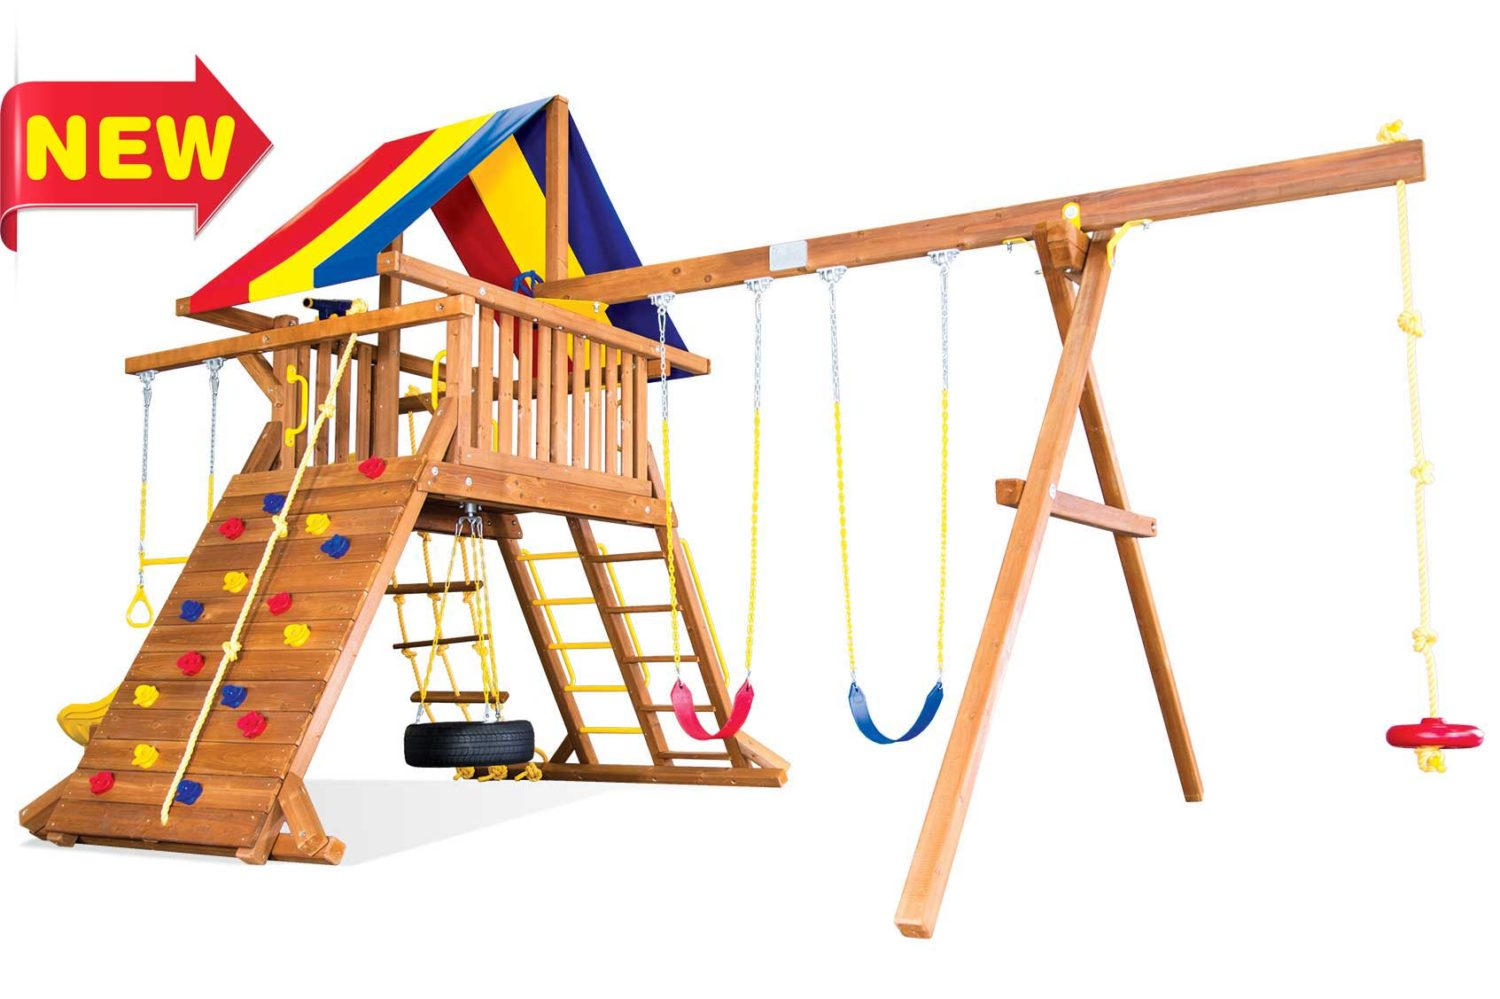 Circus Turbo Castle Pkg II with Kids Slide Wooden Swing Sets